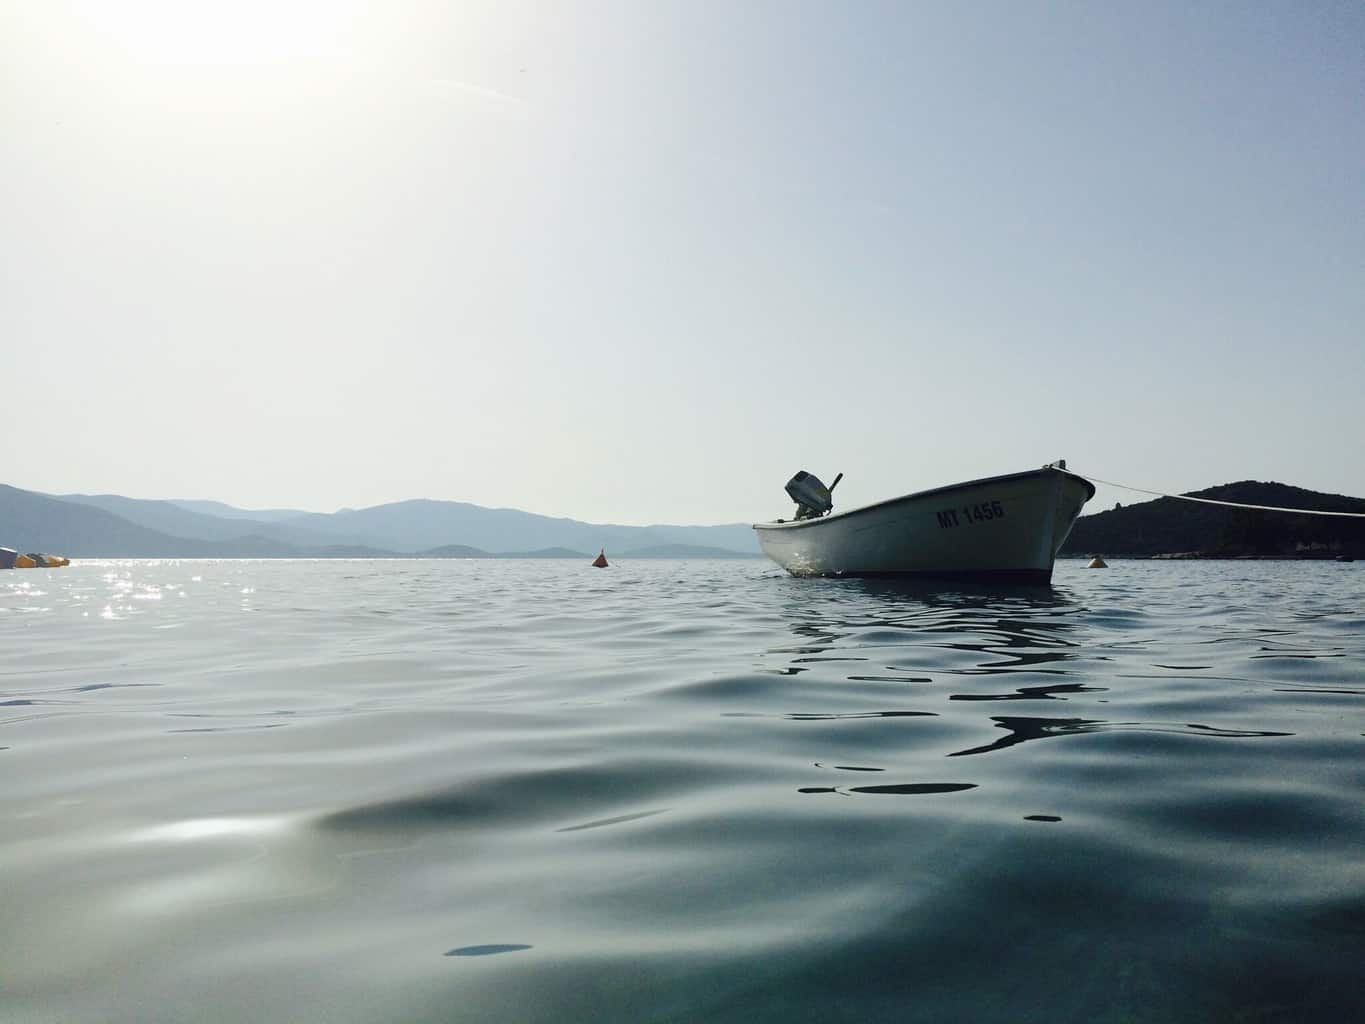 A worm view of a boat in the water with trolling motor